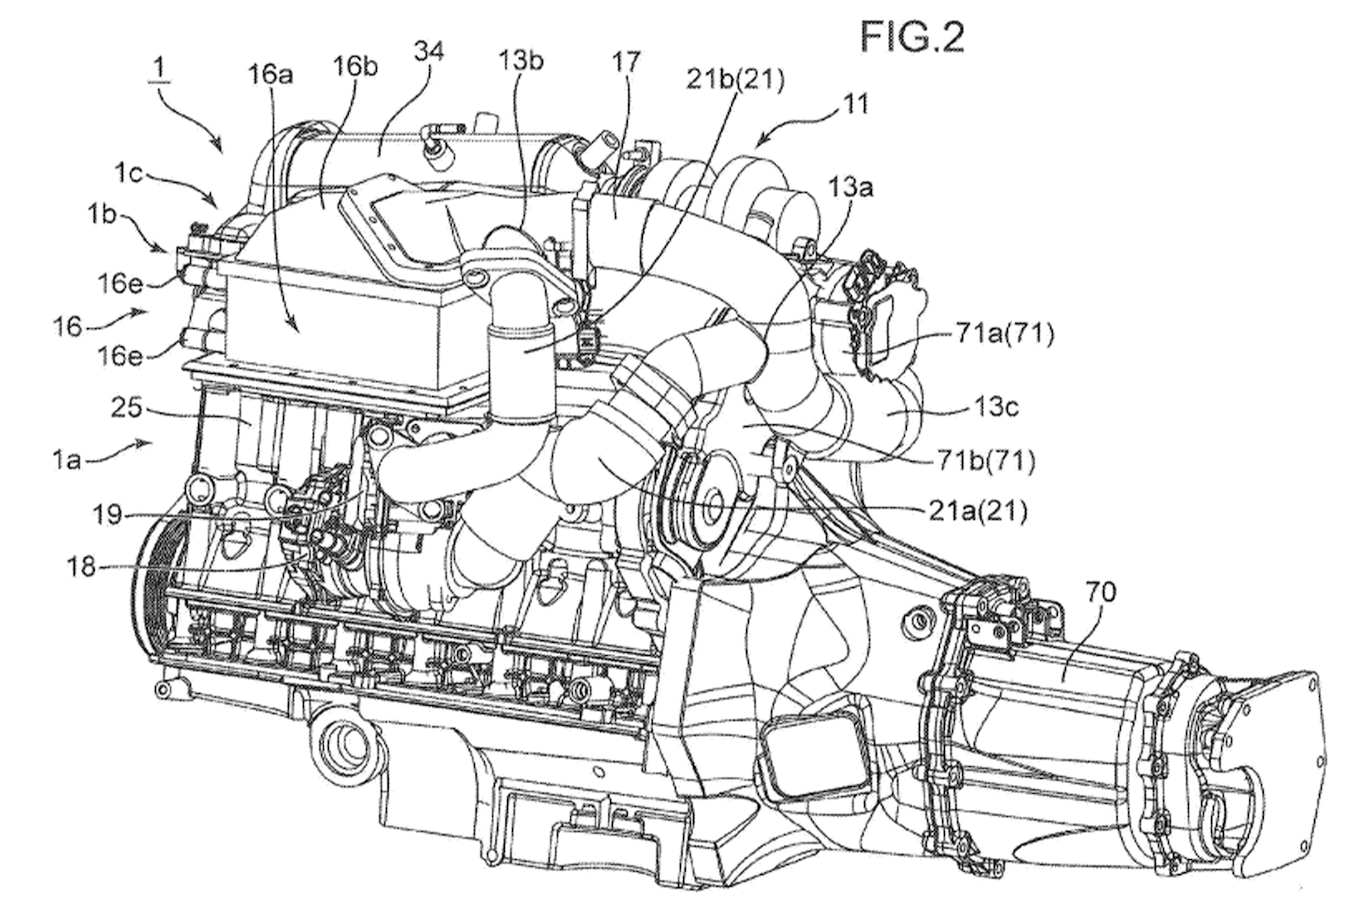 Mazda Patents Triple-Charged Engine With Electric